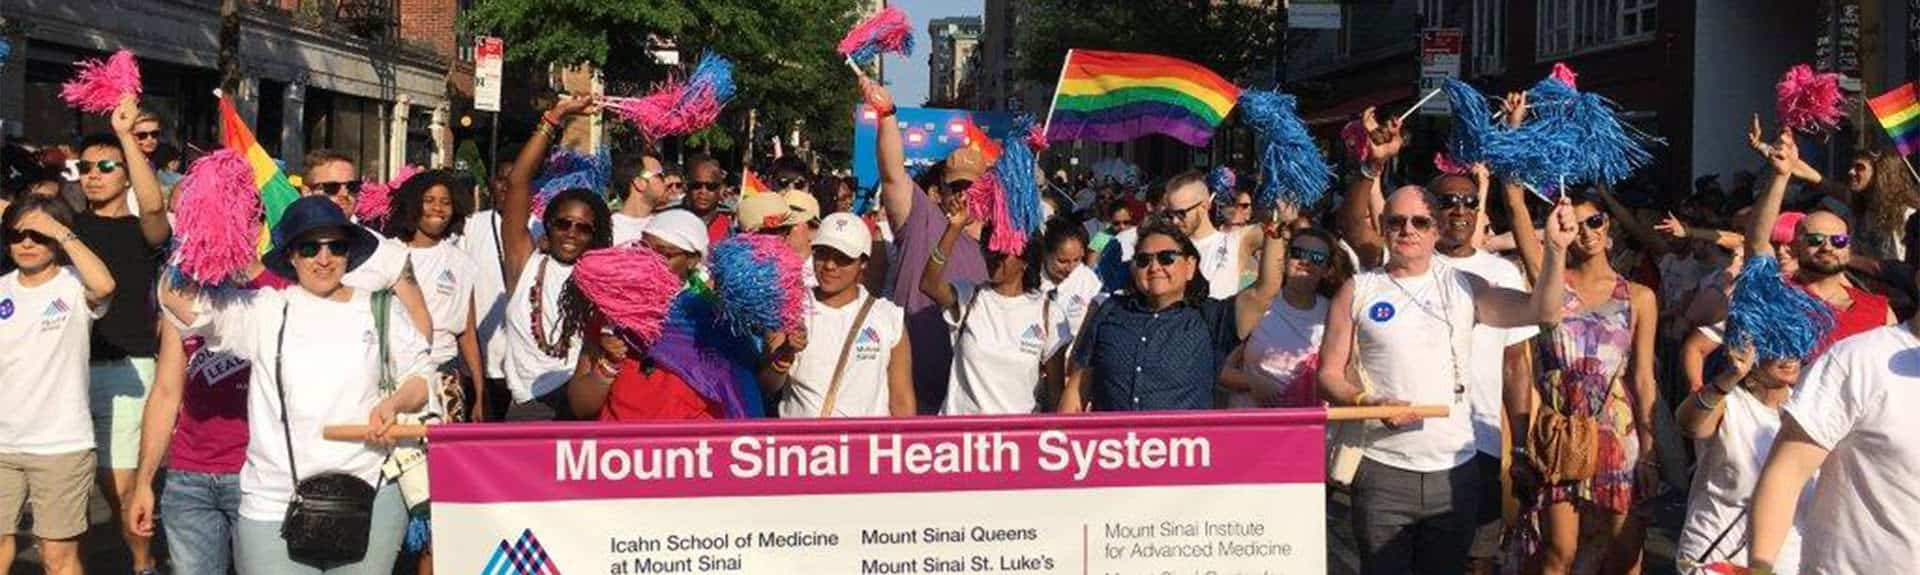 LGBT parade with walkers holding Mount Sinai banner